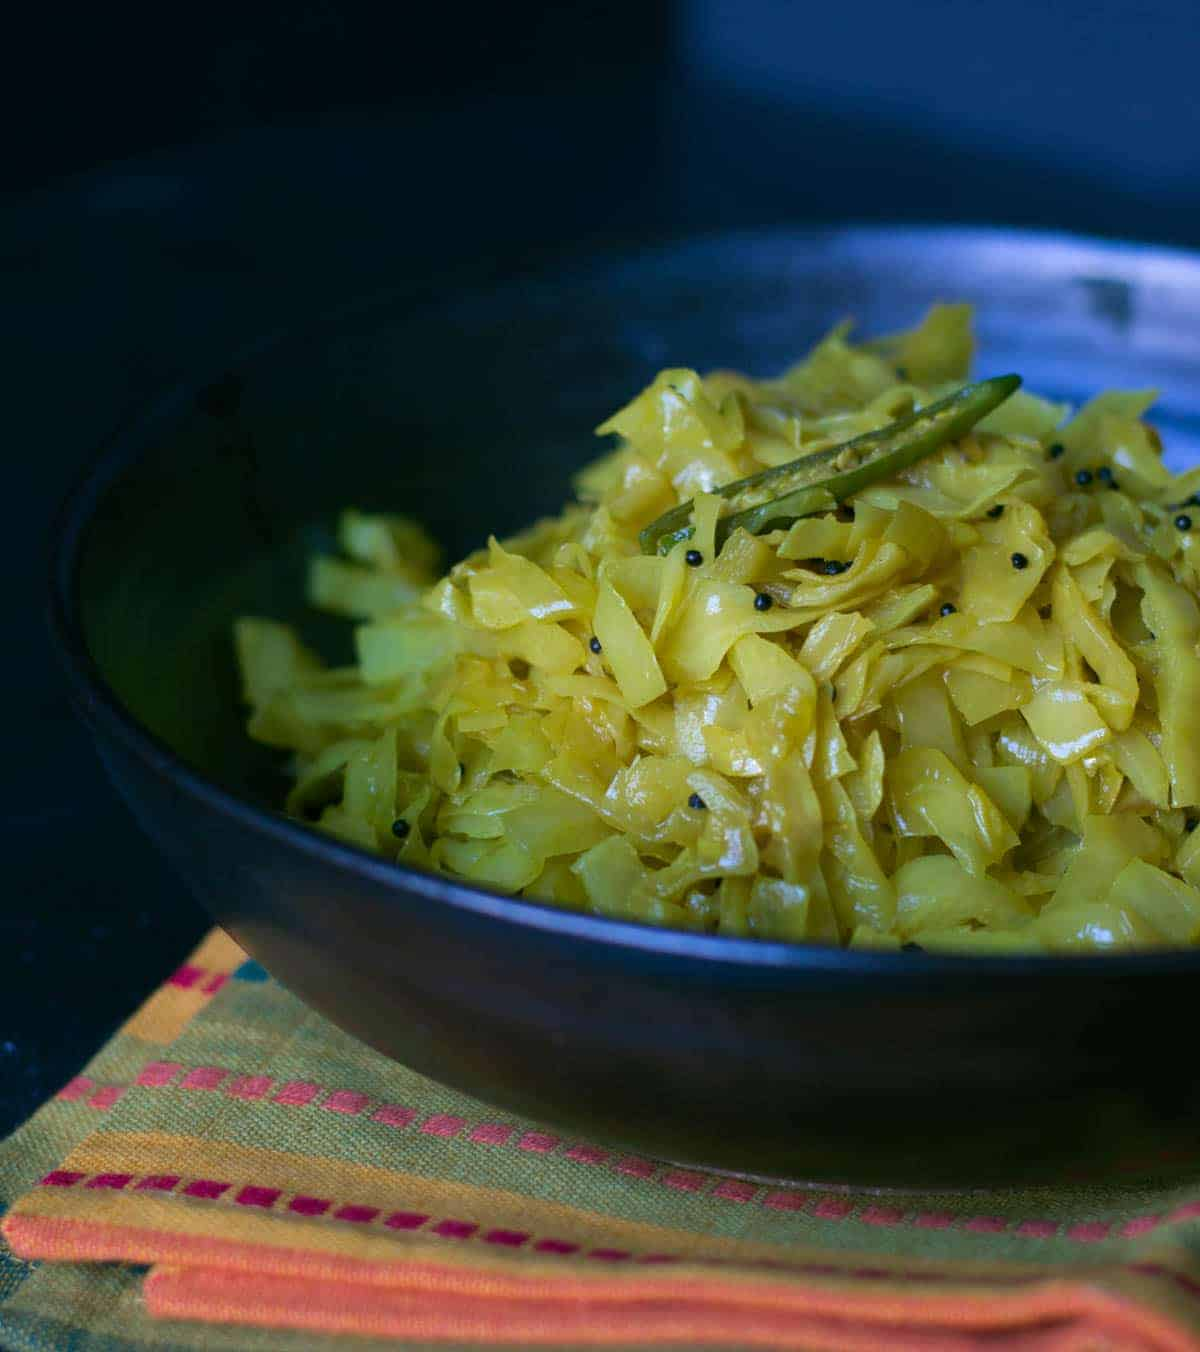 Simple, yet flavorful Cabbage sukka or palya is a stir-fried cabbage dish that pairs well with steamed rice and sambar to make a perfect afternoon meal.